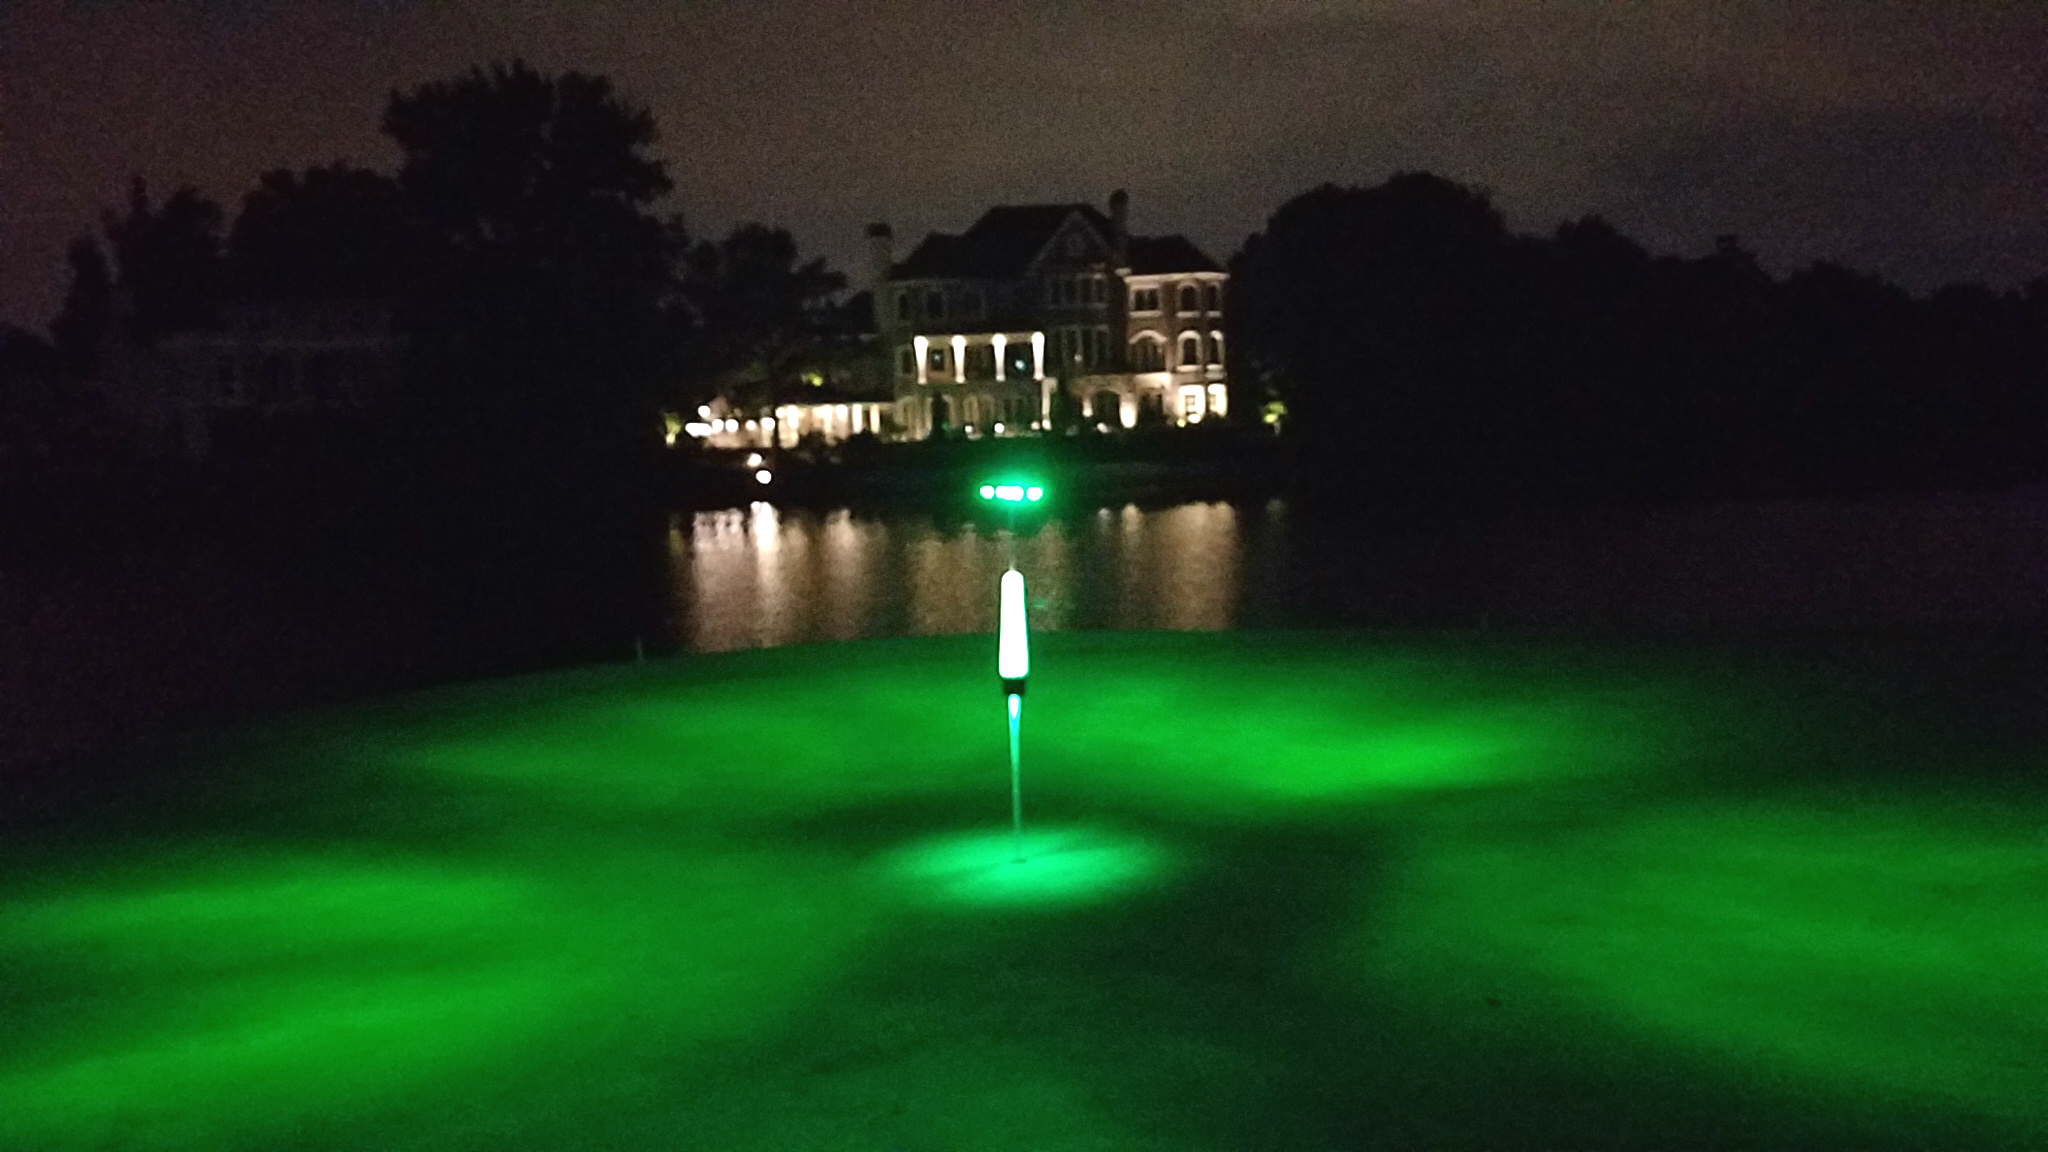 special golf lights designed for putting greens and practice putting greens